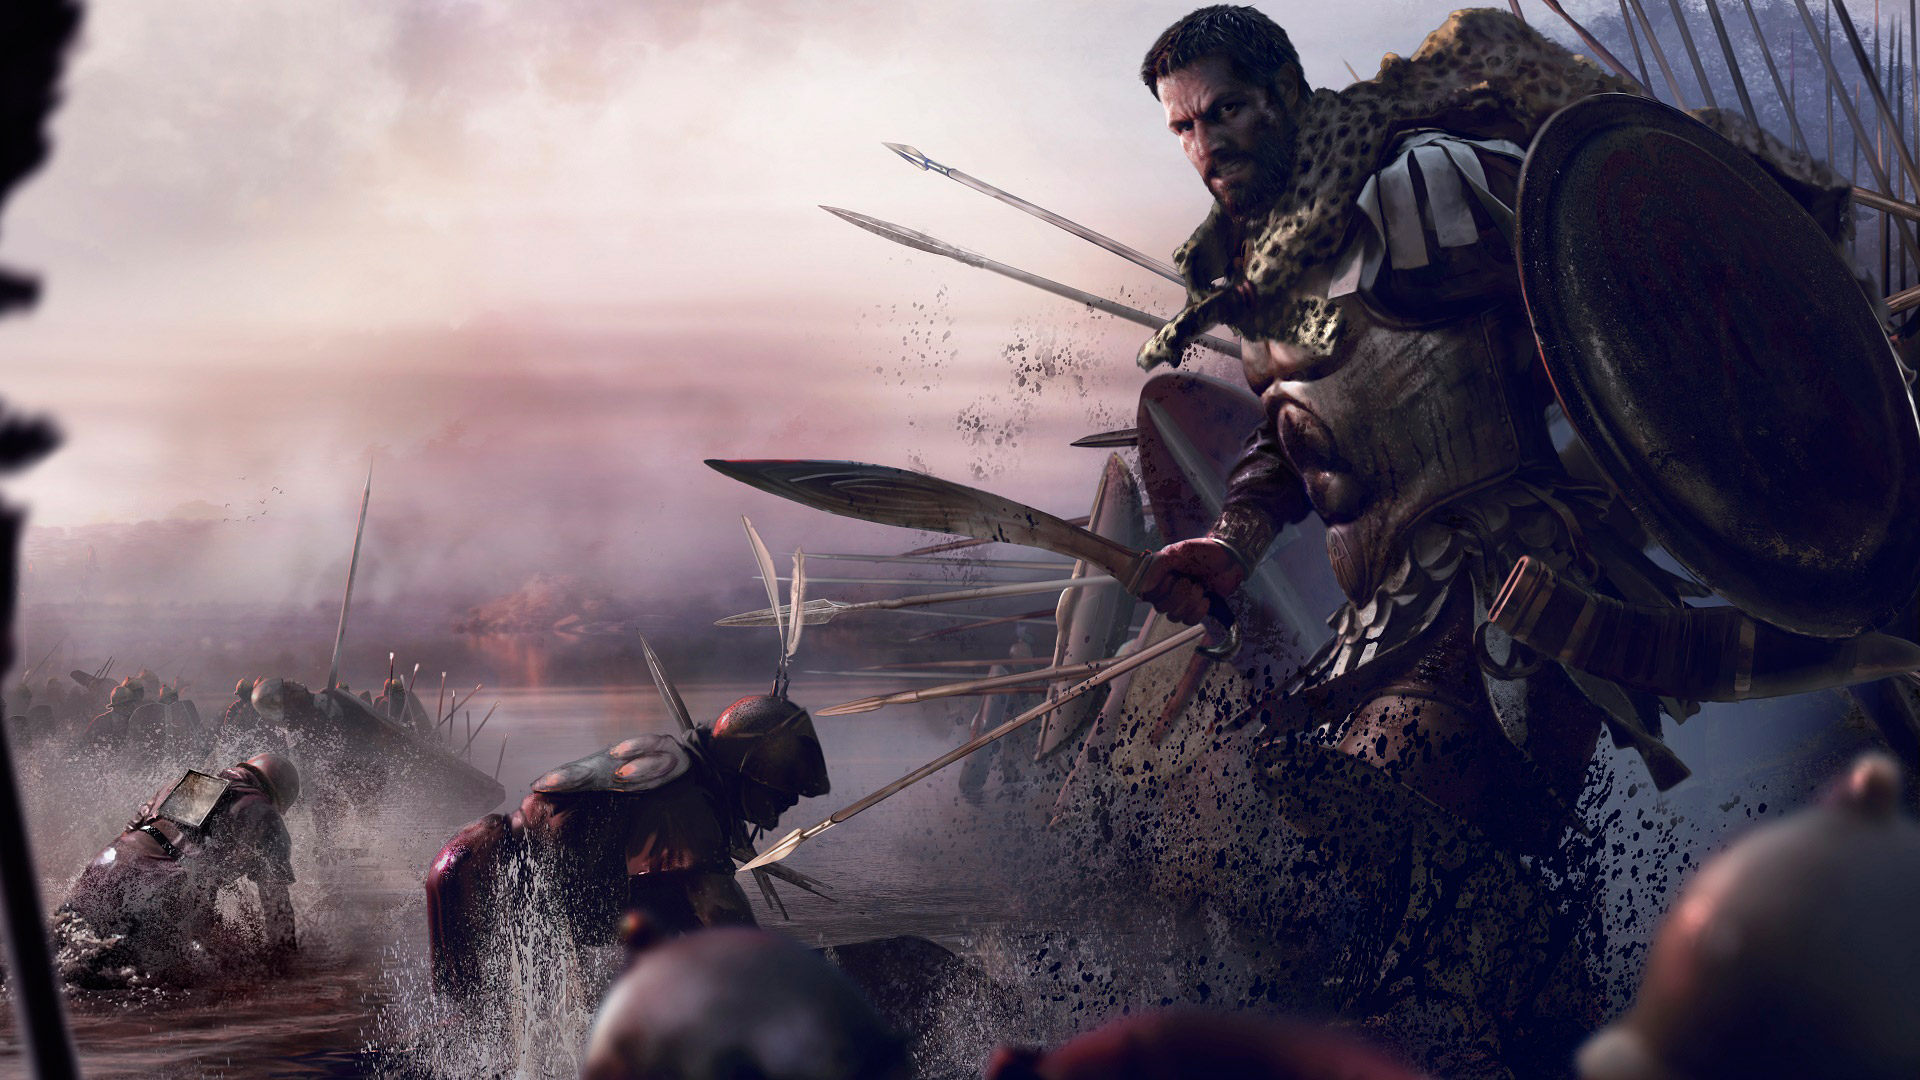 wallpapers of Total War Rome 2 You are downloading Total War Rome 2 1920x1080